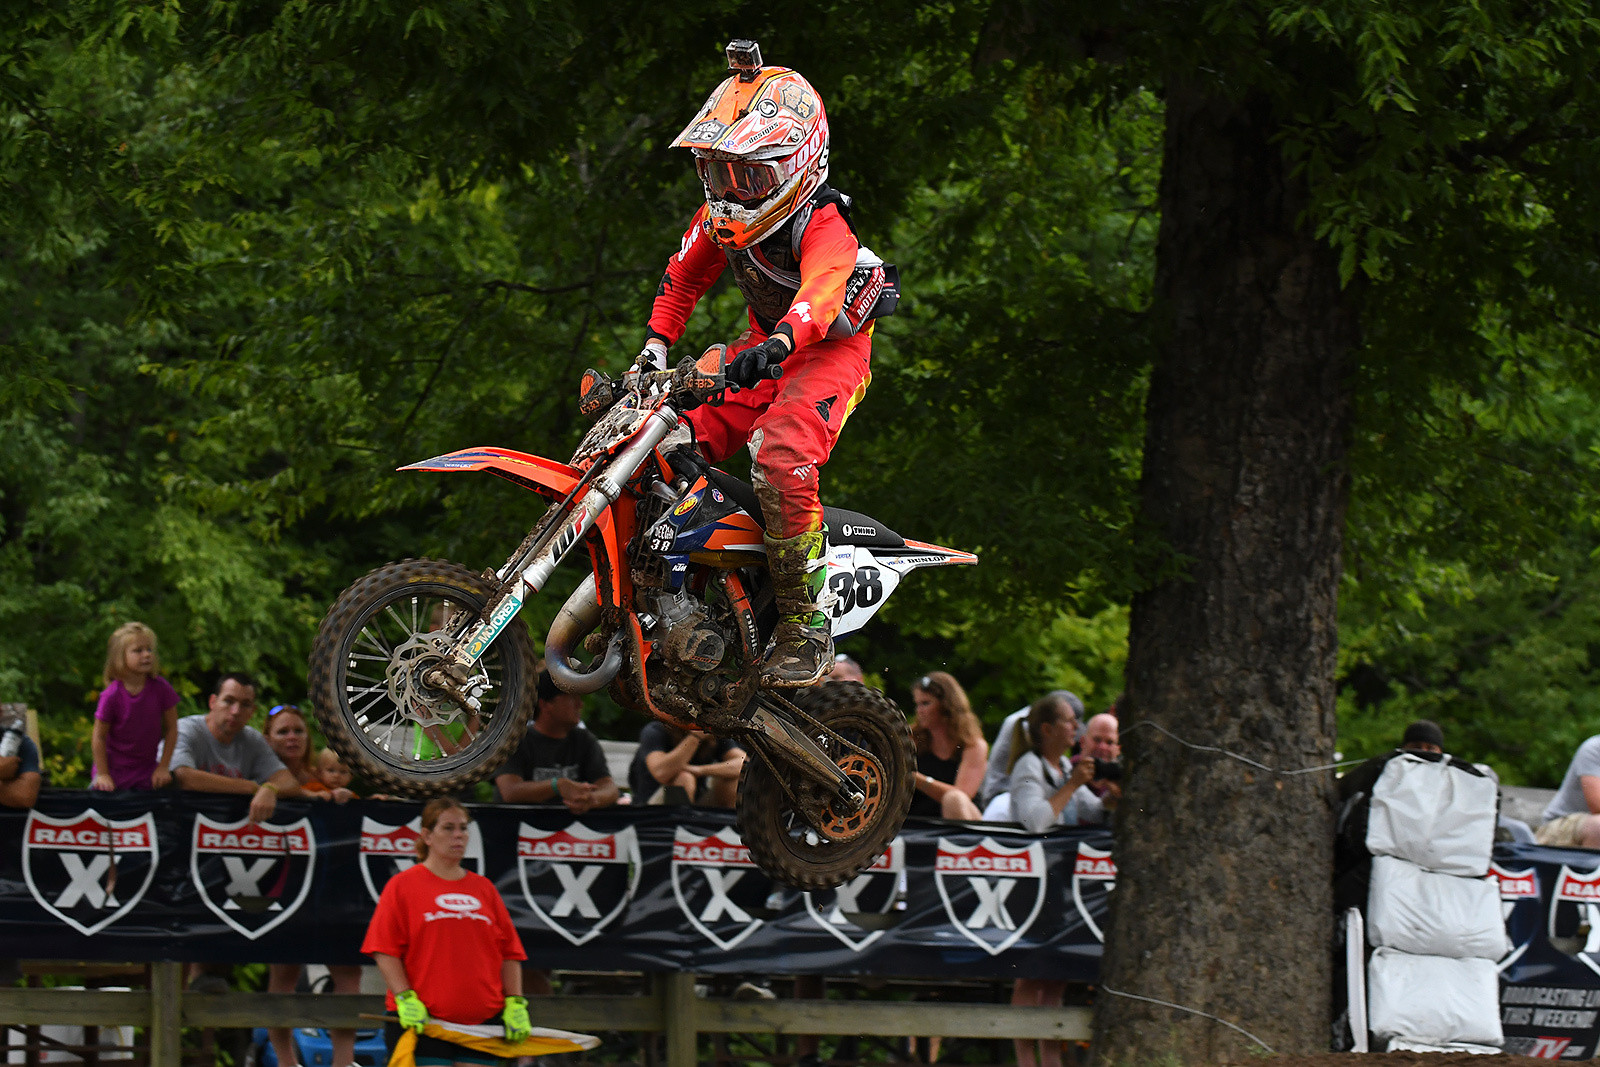 After an early crash Haiden Deegan settled for second in his first moto result of the week.